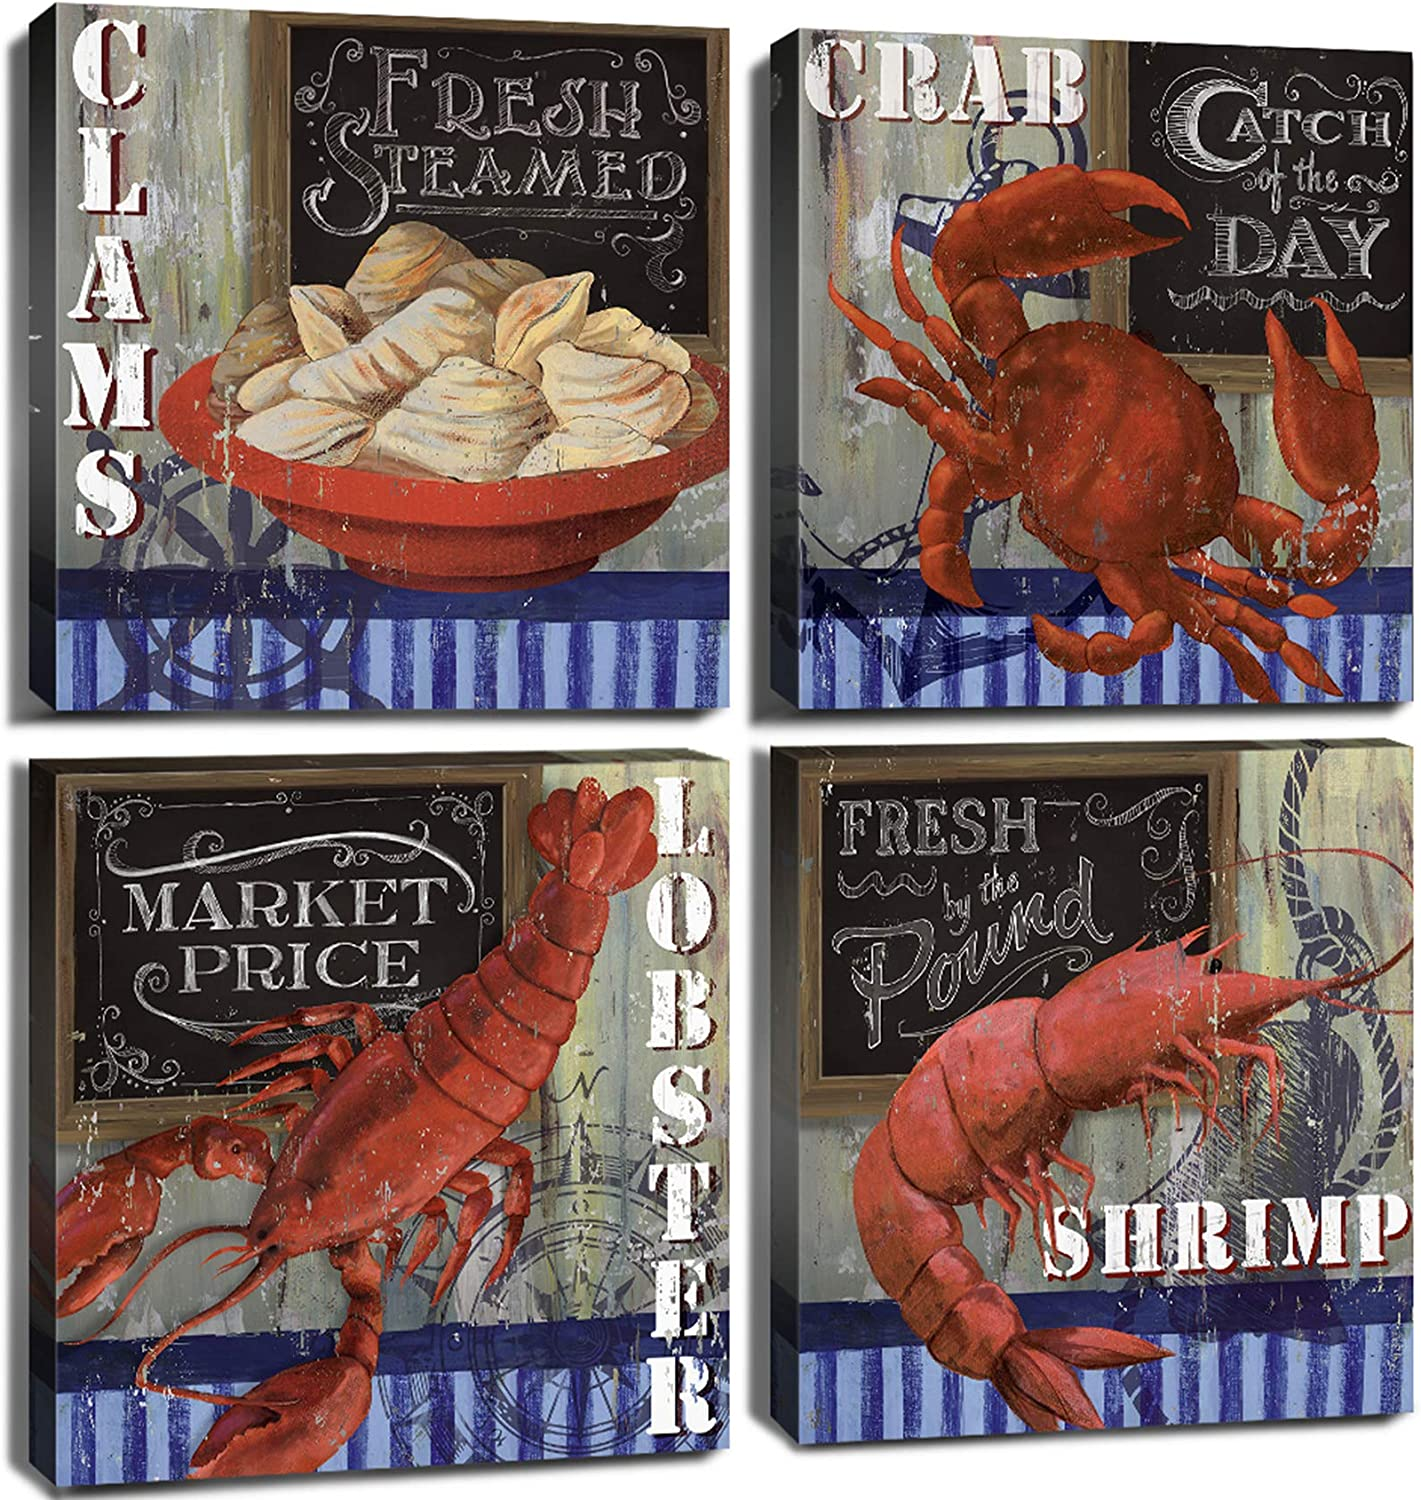 Cooking Wall Decor Kitchen Seafood Canvas Prints Art Decoration Farmhouse Rustic Retro Red and Blue Lobster Sea Animal Theme Photo Crab Clam Shrimp Pictures Aesthetic Coastal Painting 12×12 Inch 4 Pcs